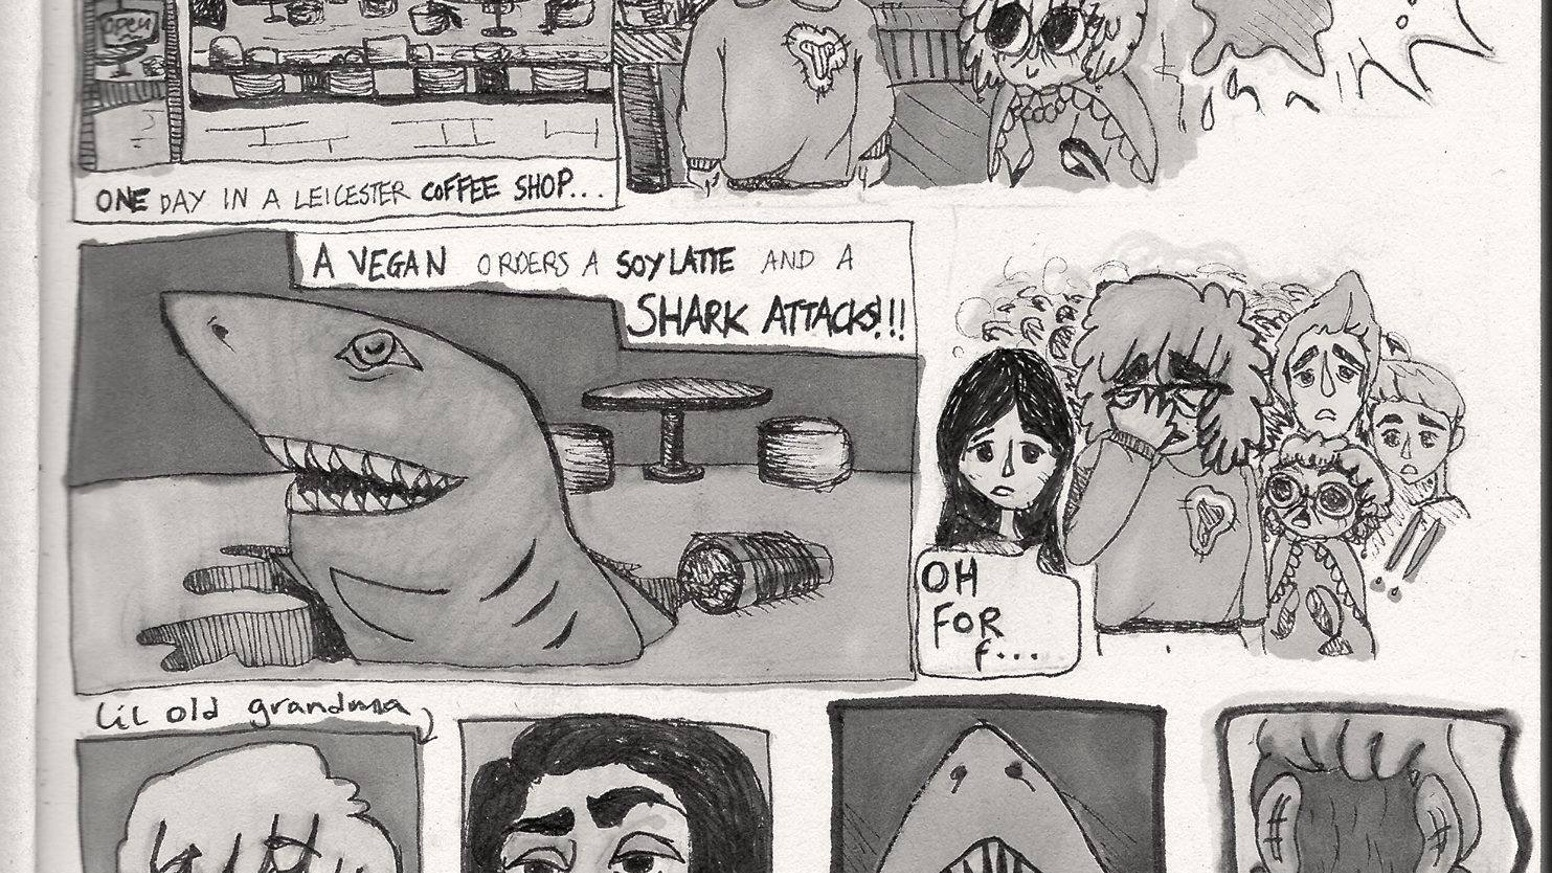 Sharks in a Coffee Shop is a lo-fi, b-movie inspired zine comic illustrated by Rhiannon Townsend and written by Courtney Askey.